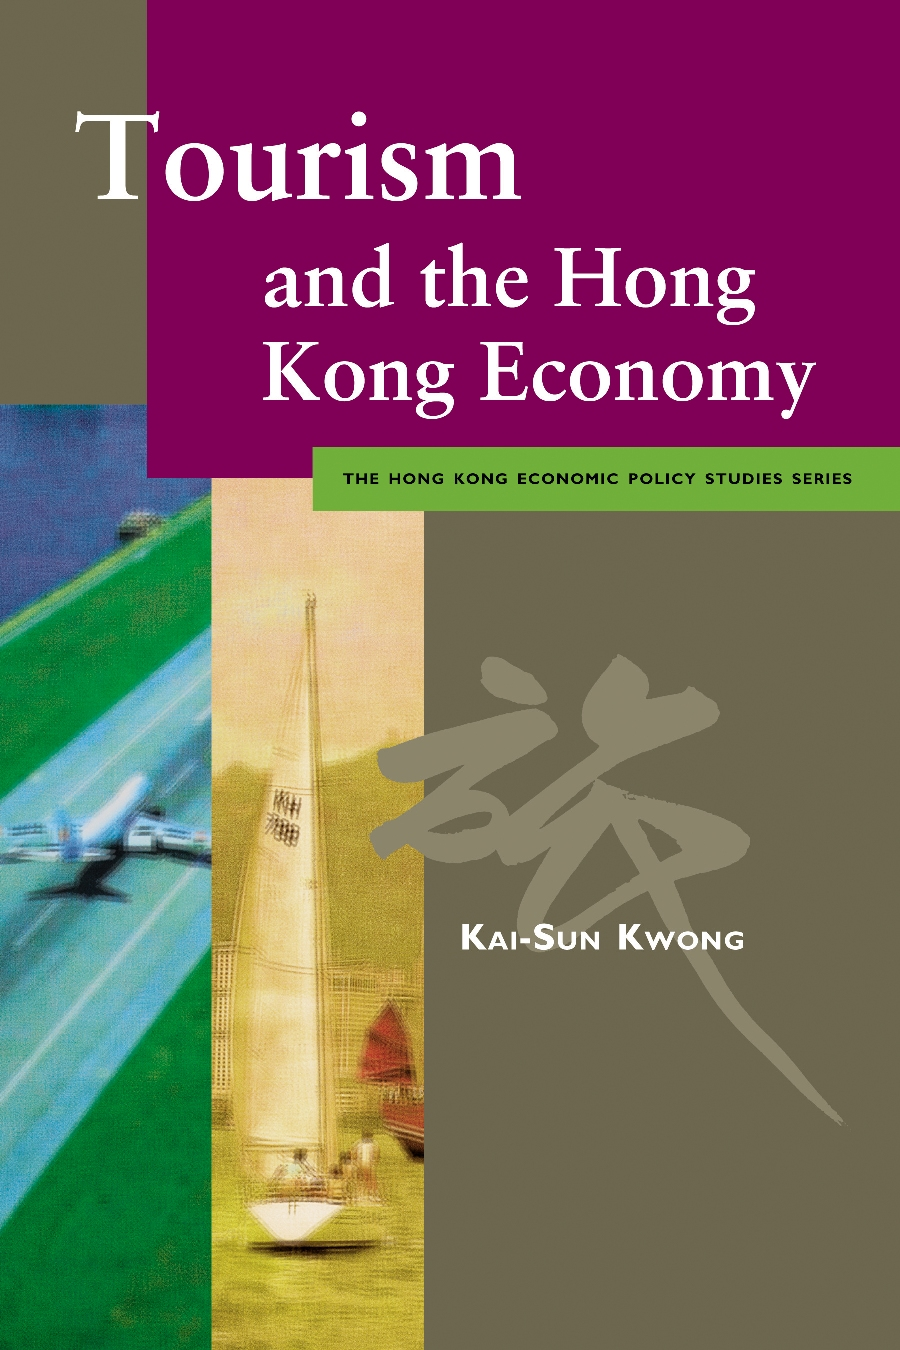 Tourism and the Hong Kong Economy